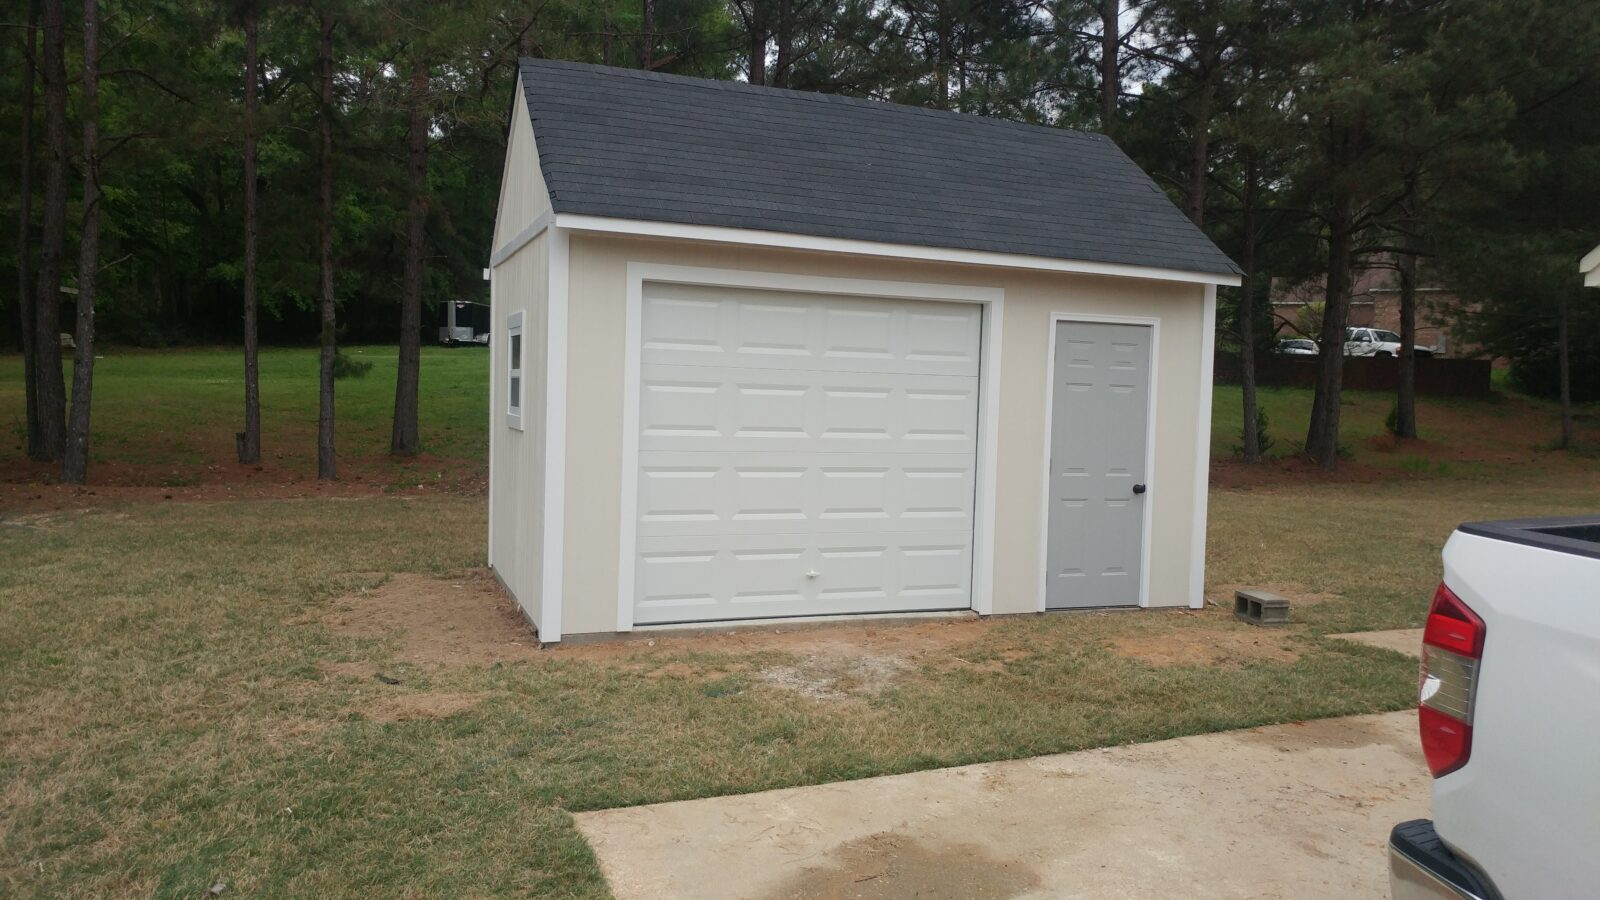 Garage Builder Prattville, AL | Shed Builder Millbrook, AL